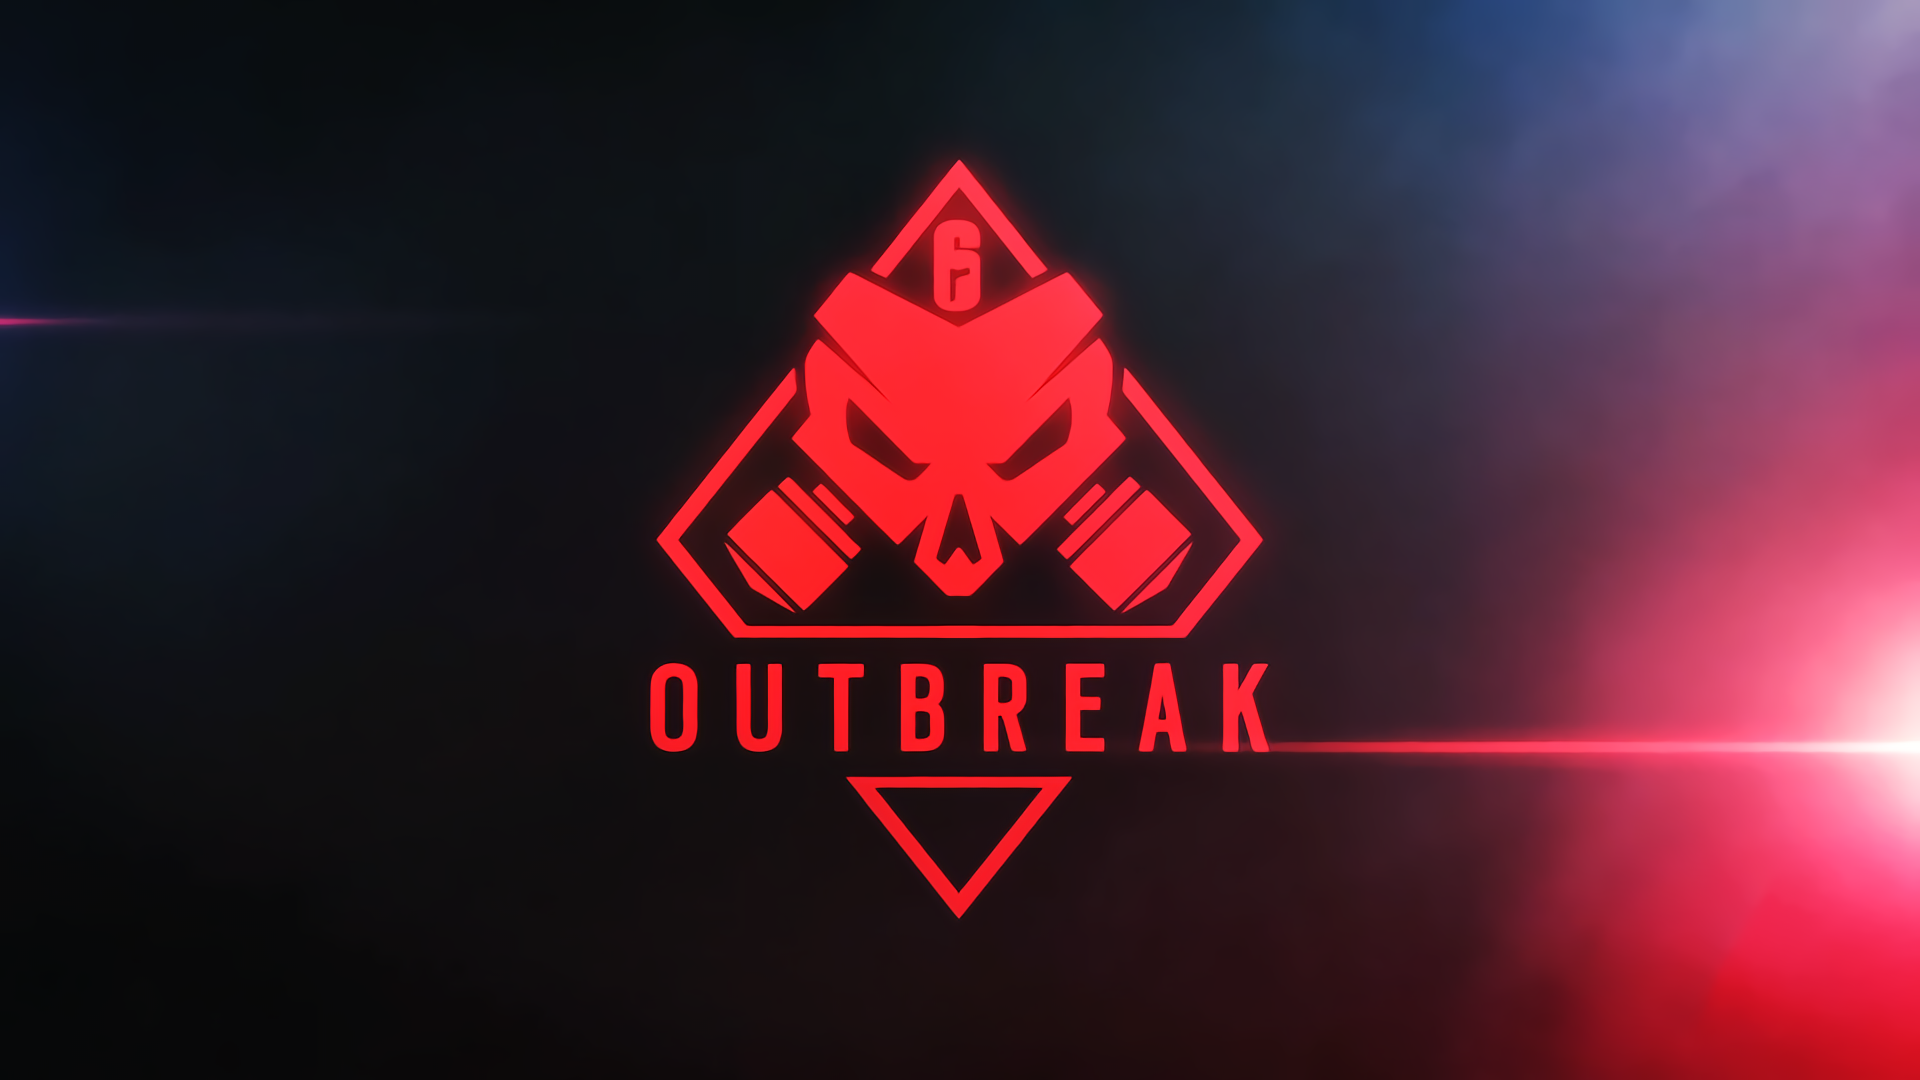 Outbreak Wallpapers Top Free Outbreak Backgrounds Wallpaperaccess